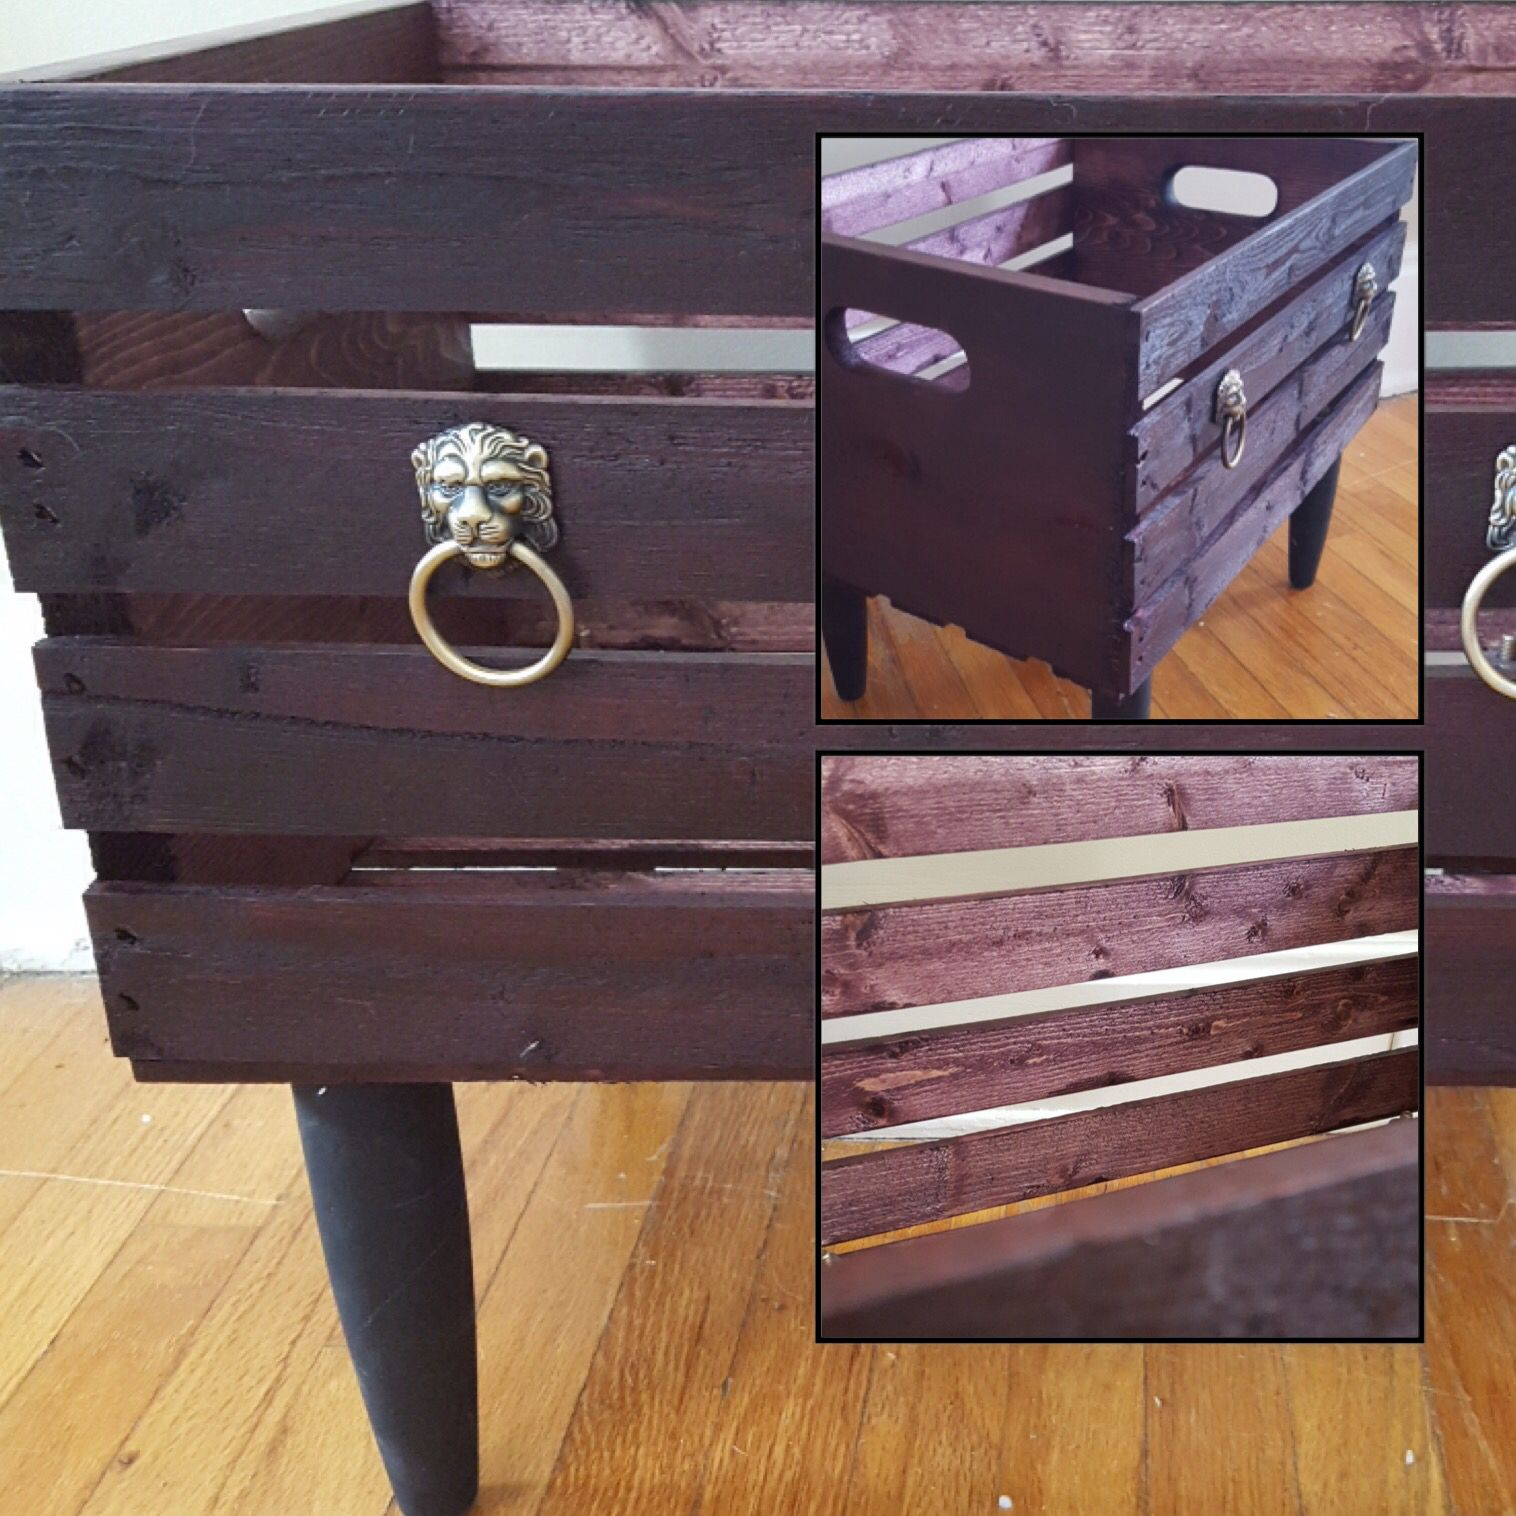 Used Varathane Dark Cherry stain on a pine box one coat on the